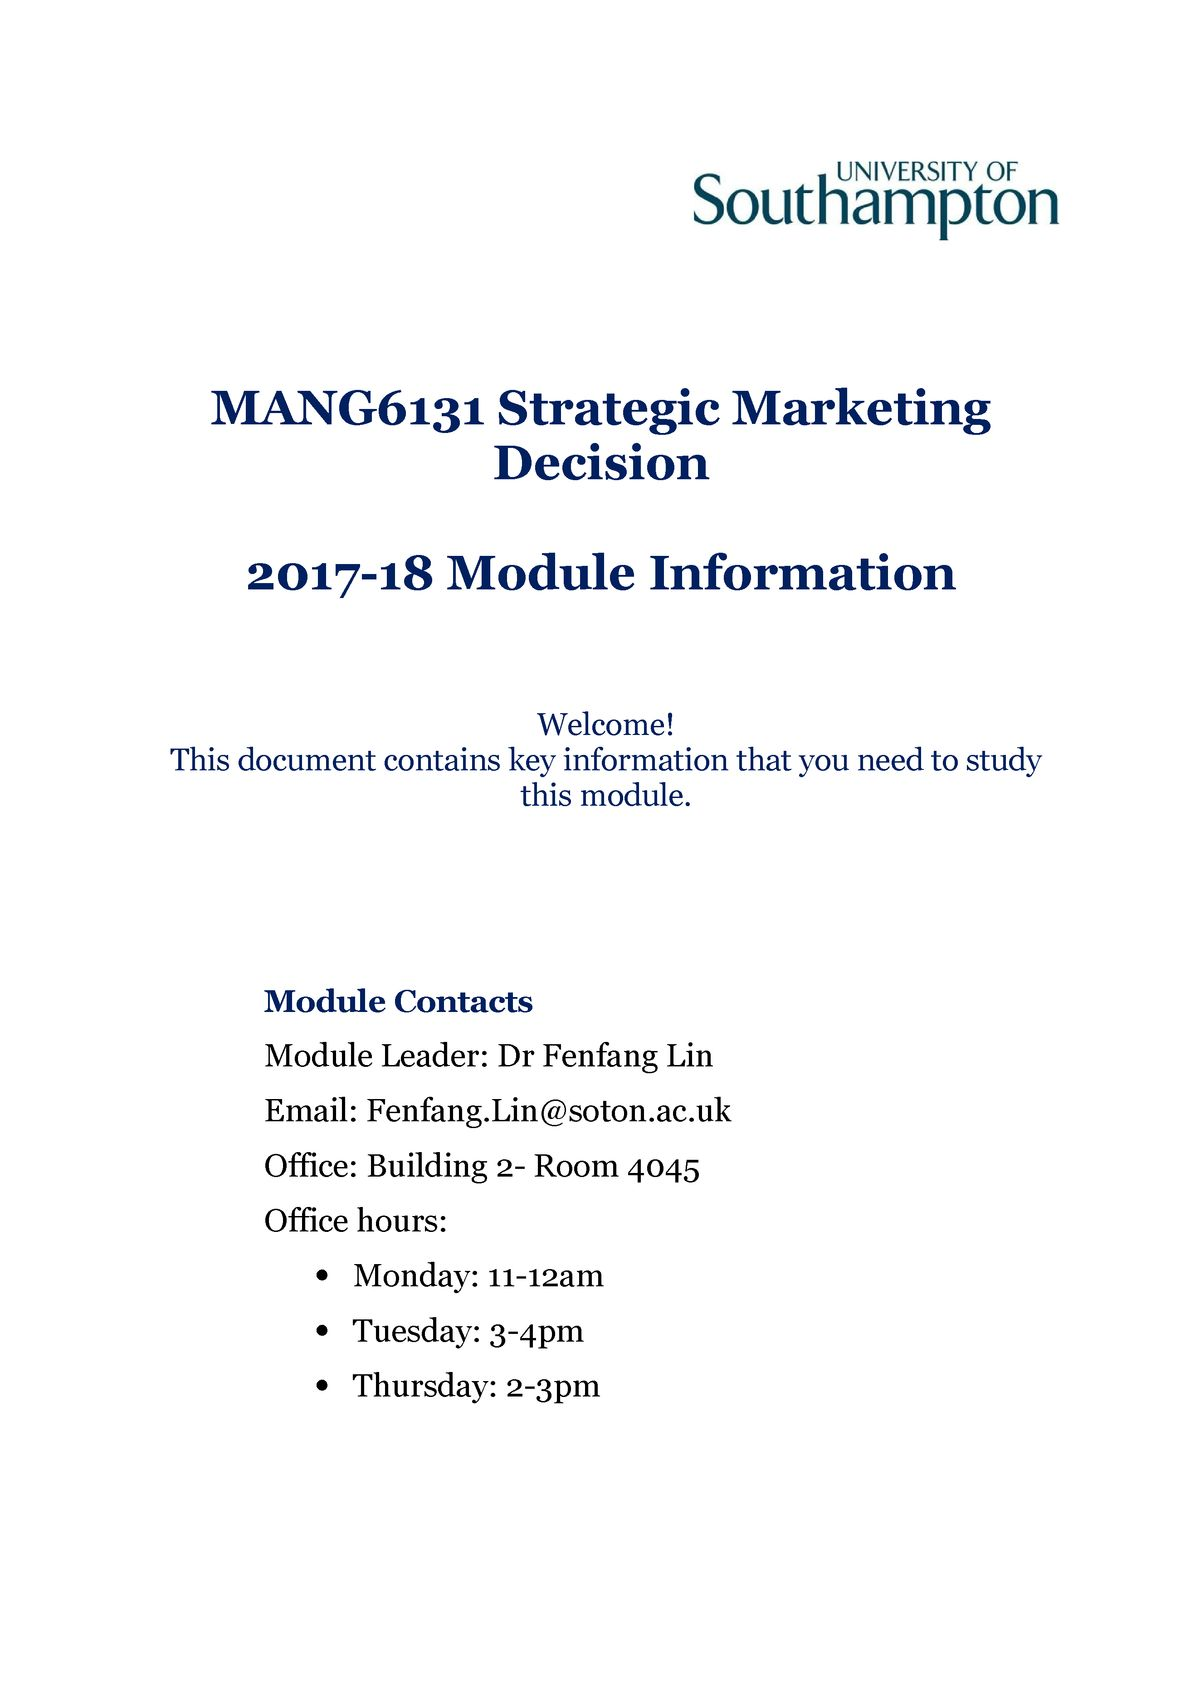 Strategy and Business Magazine Mang6131 Strategic Marketing Decision Module Handbook 2017 18 1